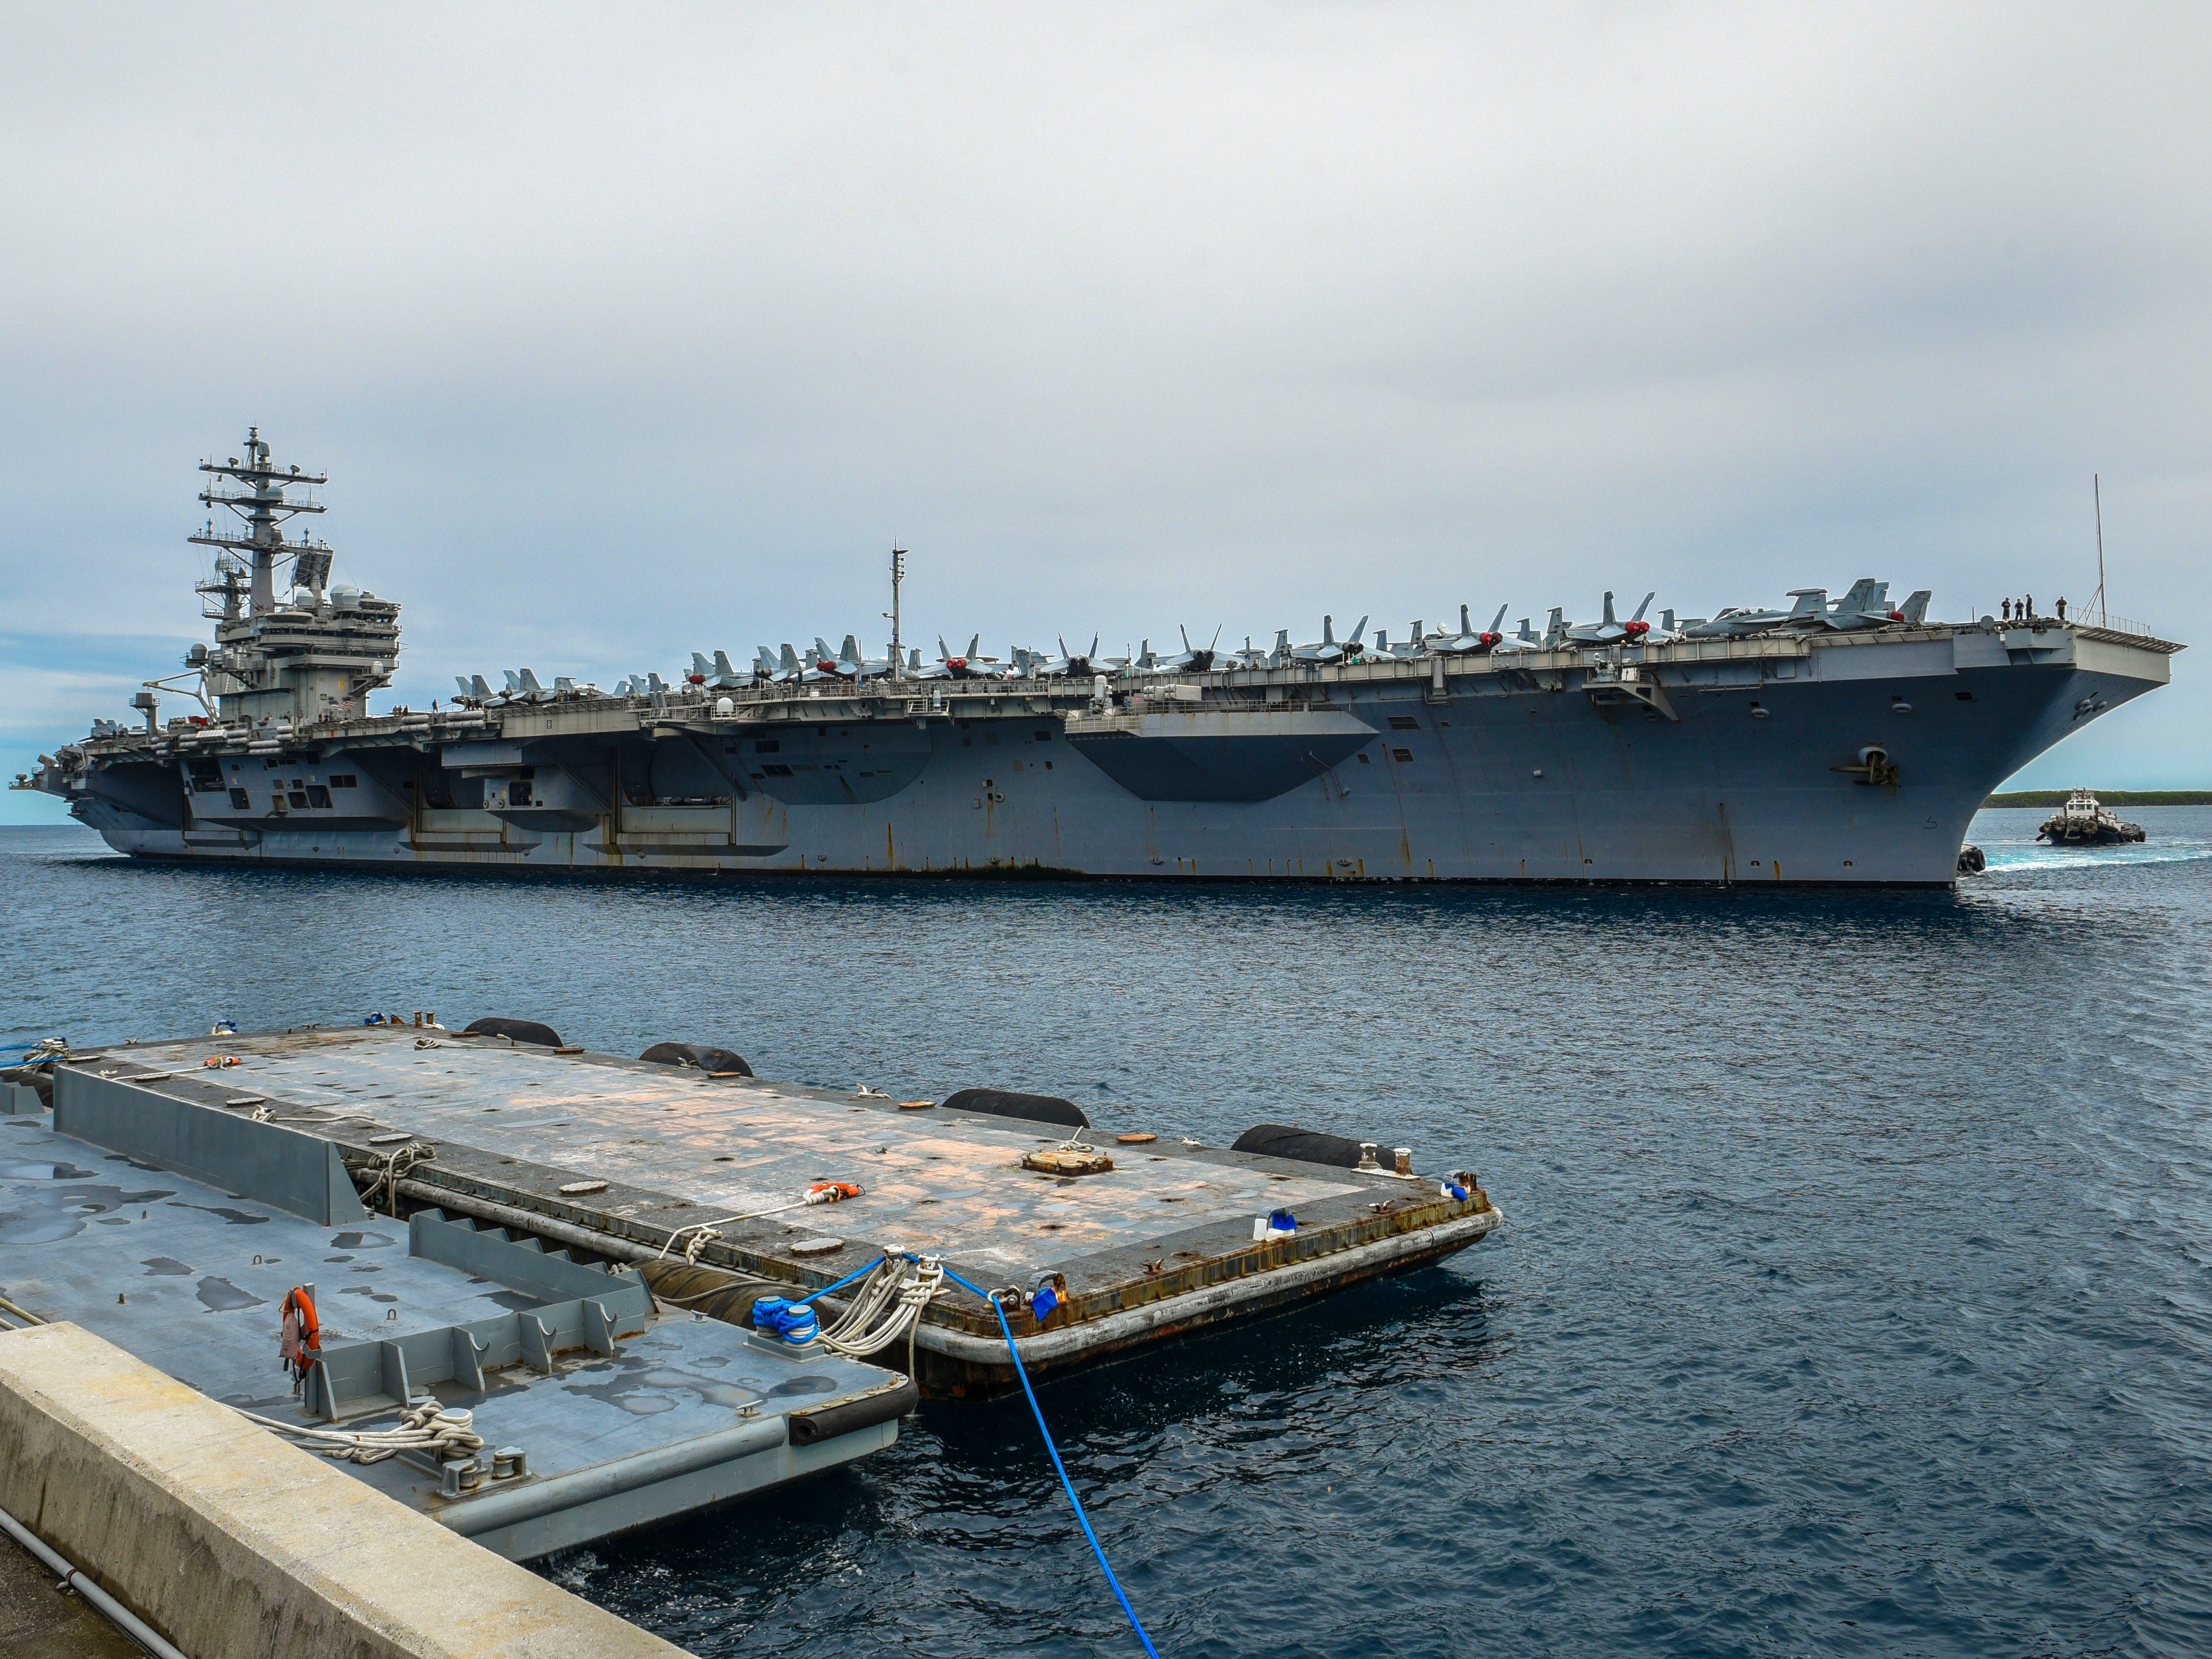 The Nimitz-class nuclear-powered aircraft carrier, USS Ronald Reagan, prepares to dock at the Kilo Wharf on Naval Base Guam in Sumay on Monday, Sept. 24, 2018. The vessel and its crew of nearly 5,000 sailors, about 20 of whom have Guam ties, is normally forward-deployed at Yokosuka, Japan but is paying the island a port visit.